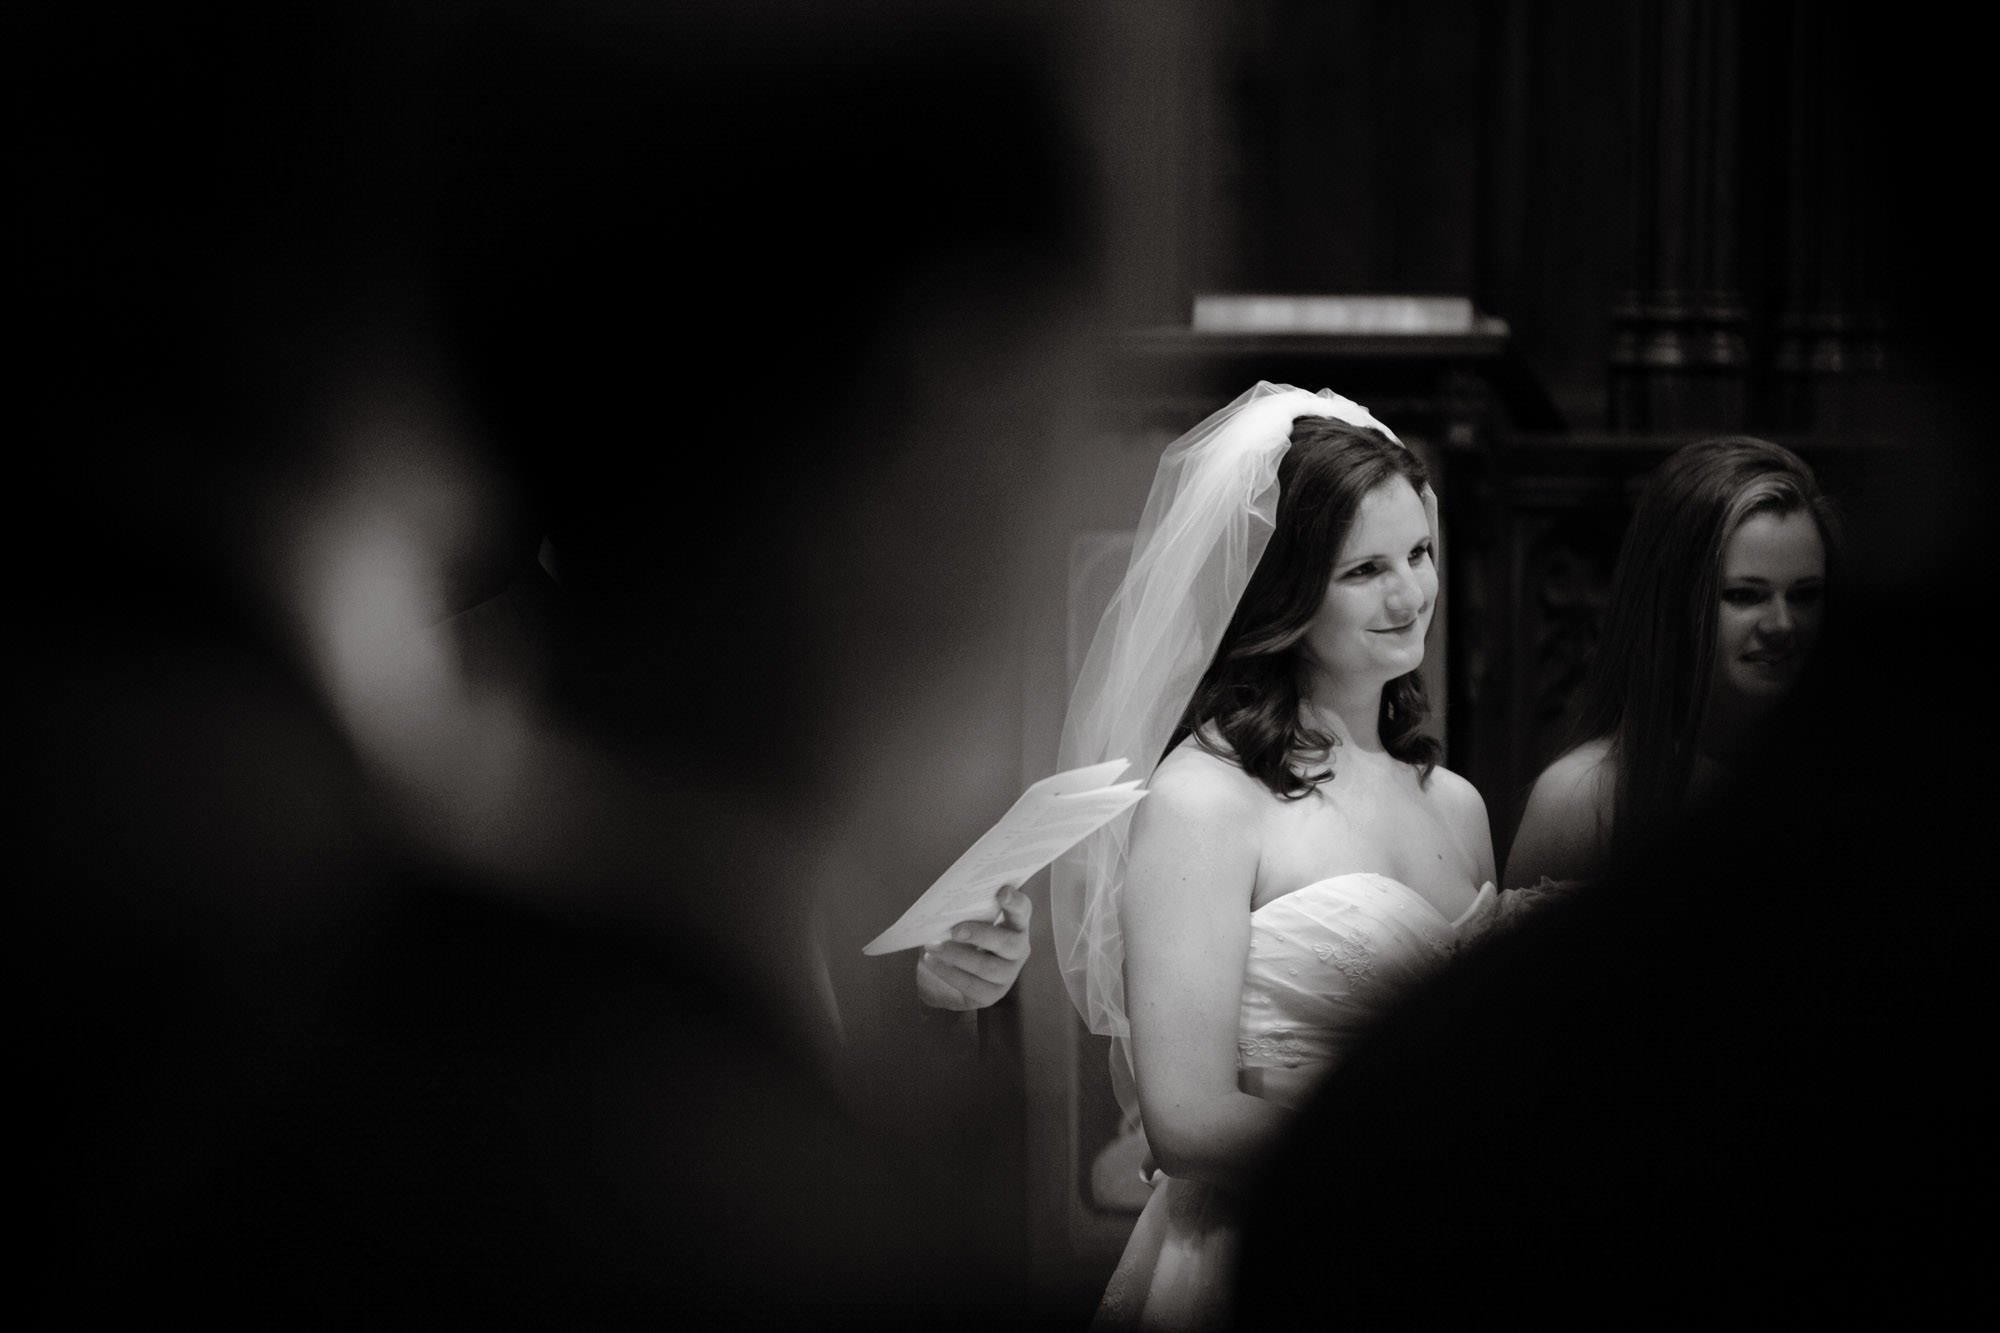 The bride smiles at her groom at her Washington National Cathedral wedding ceremony.